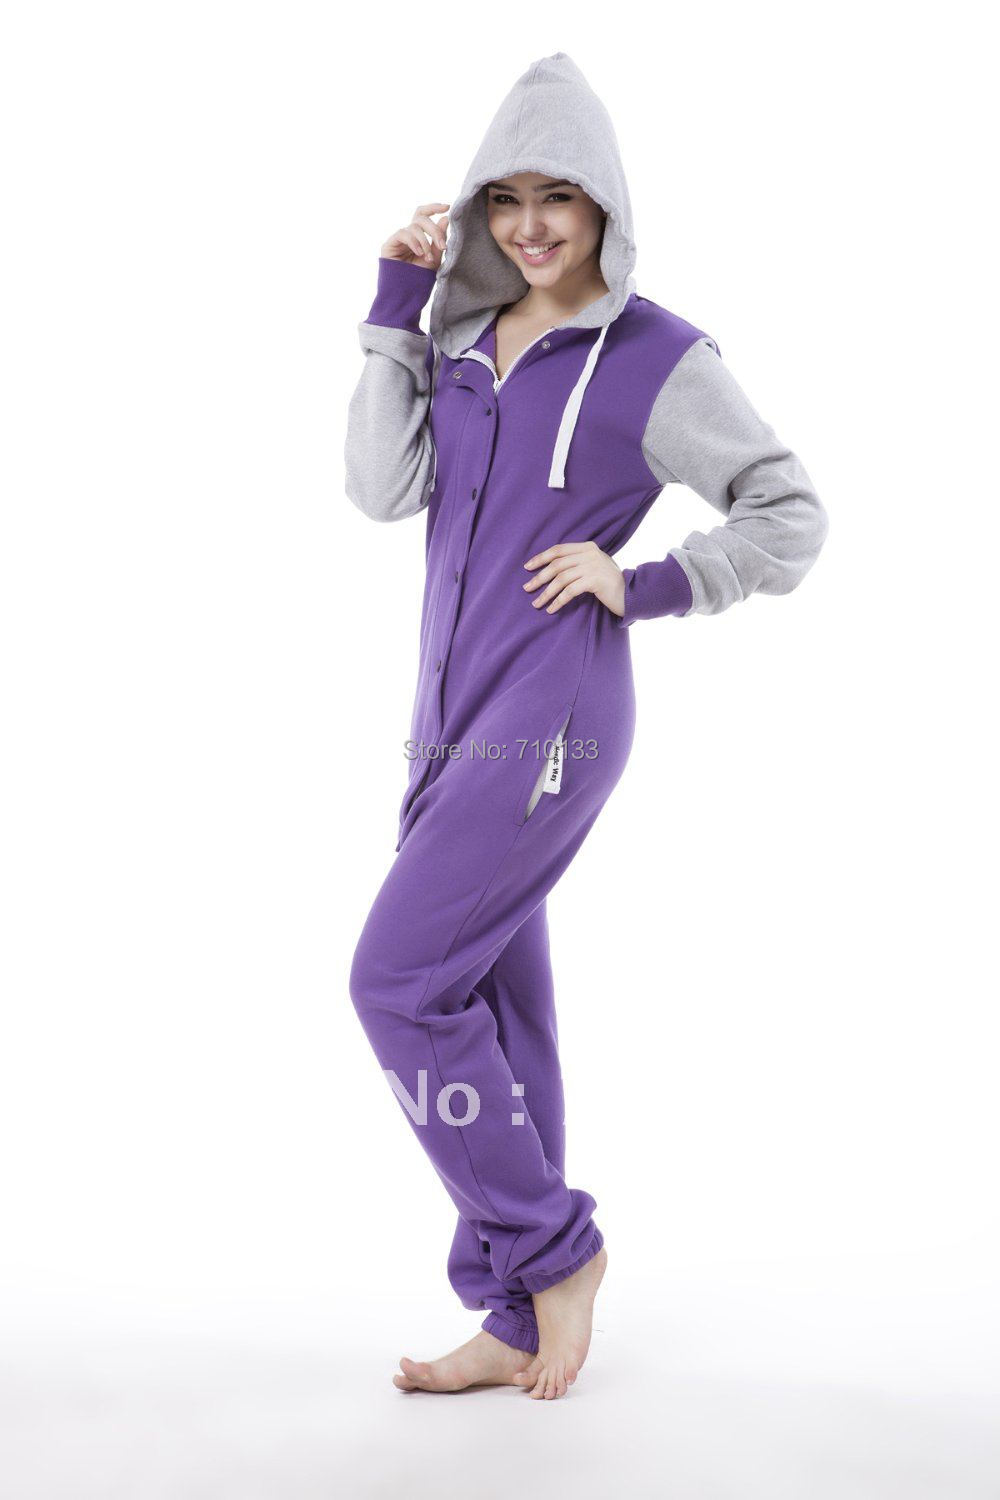 free shipping one piece jumpsuit ladies romper baseball. Black Bedroom Furniture Sets. Home Design Ideas